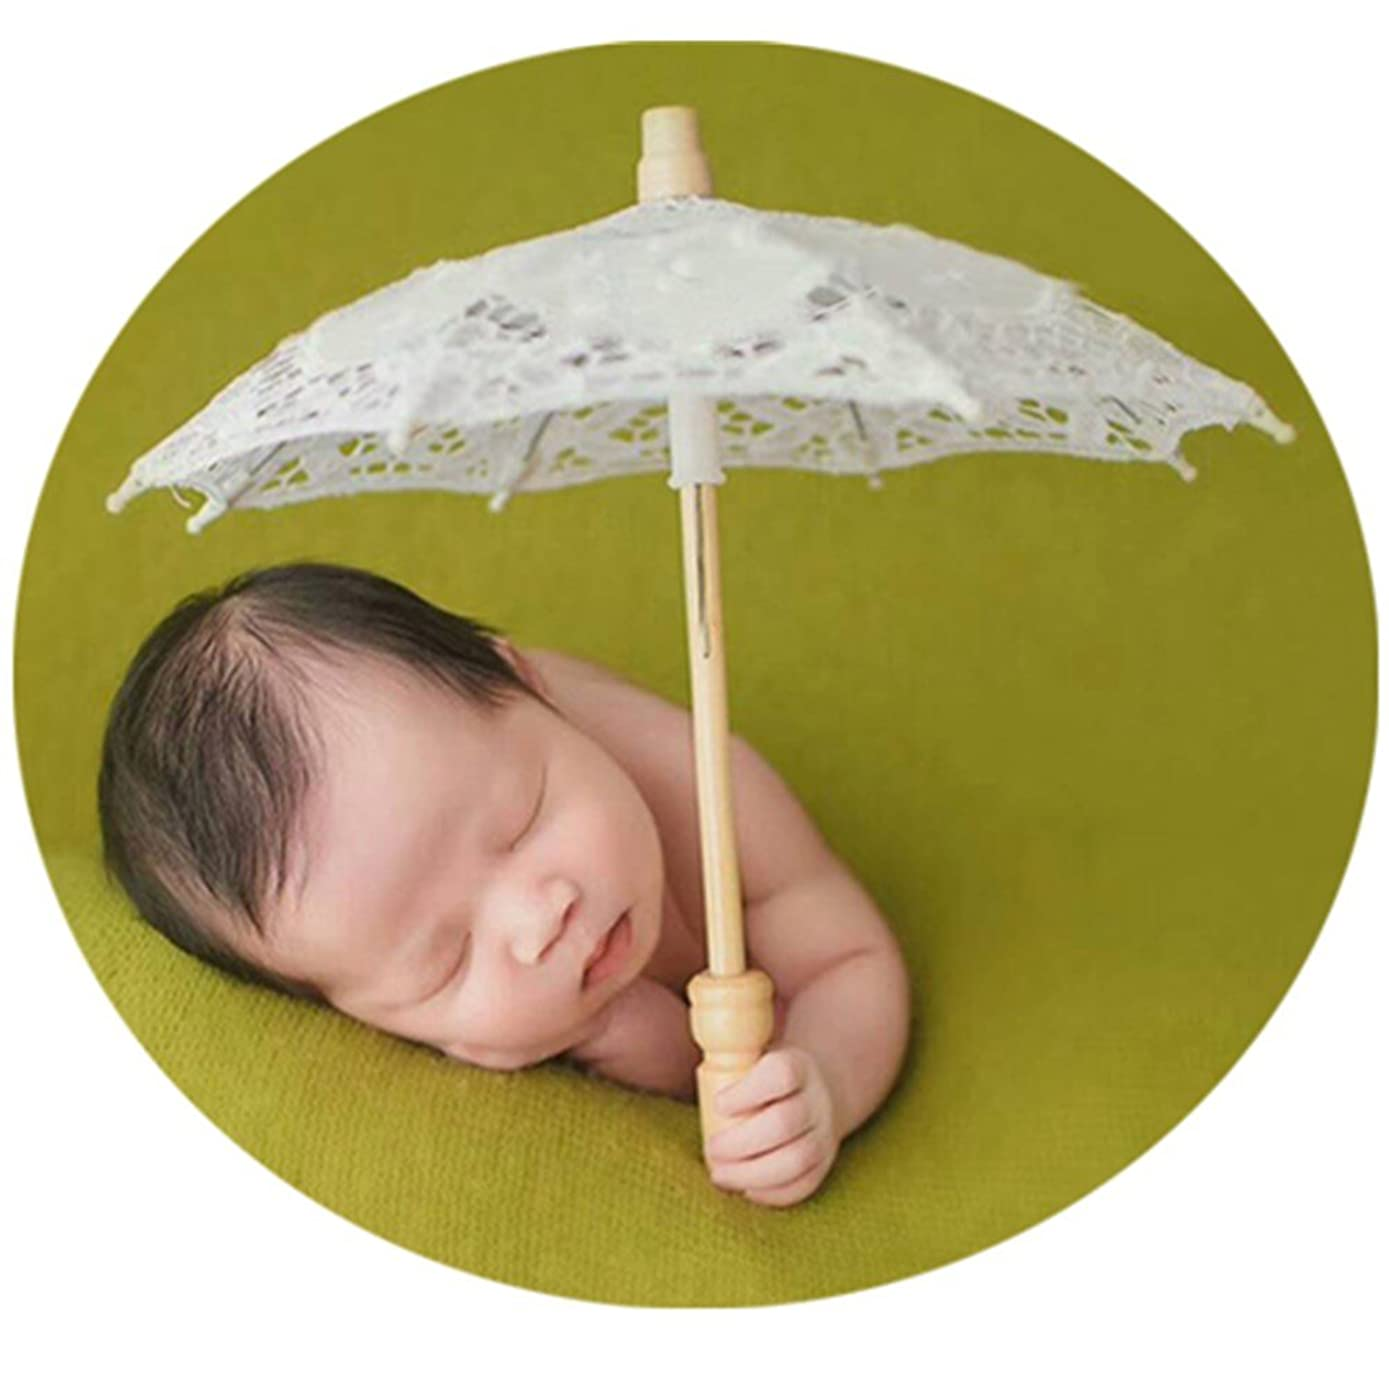 Baby Photography Props Boy Girl Photo Shoot Outfits Newborn Photos Lace Umbrella Baby Size